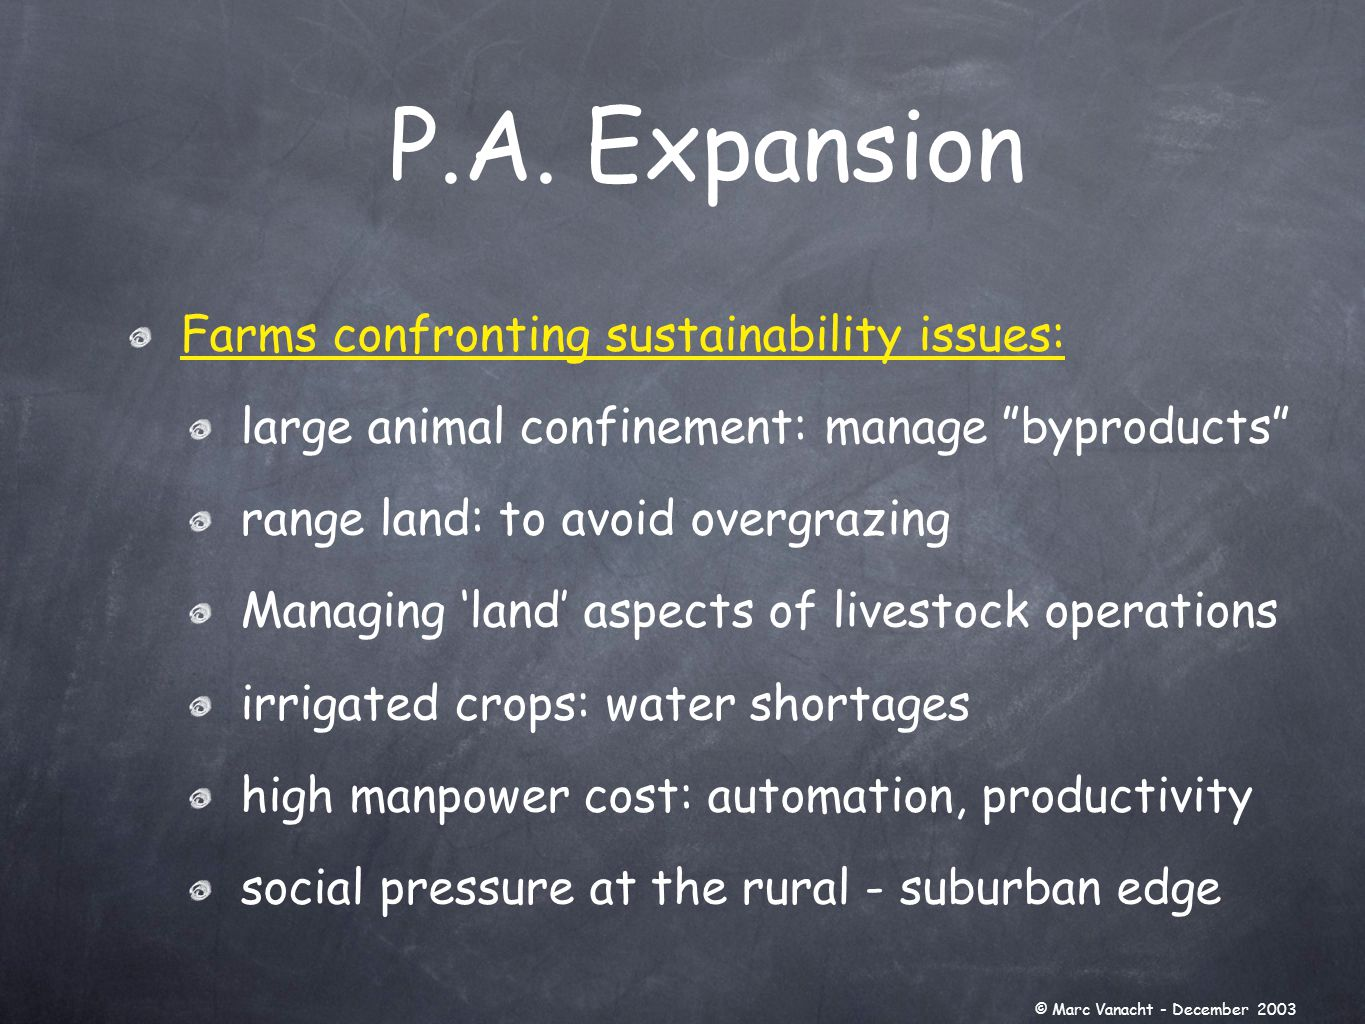 Farms confronting sustainability issues: large animal confinement: manage byproducts range land: to avoid overgrazing Managing 'land' aspects of livestock operations irrigated crops: water shortages high manpower cost: automation, productivity social pressure at the rural - suburban edge P.A.